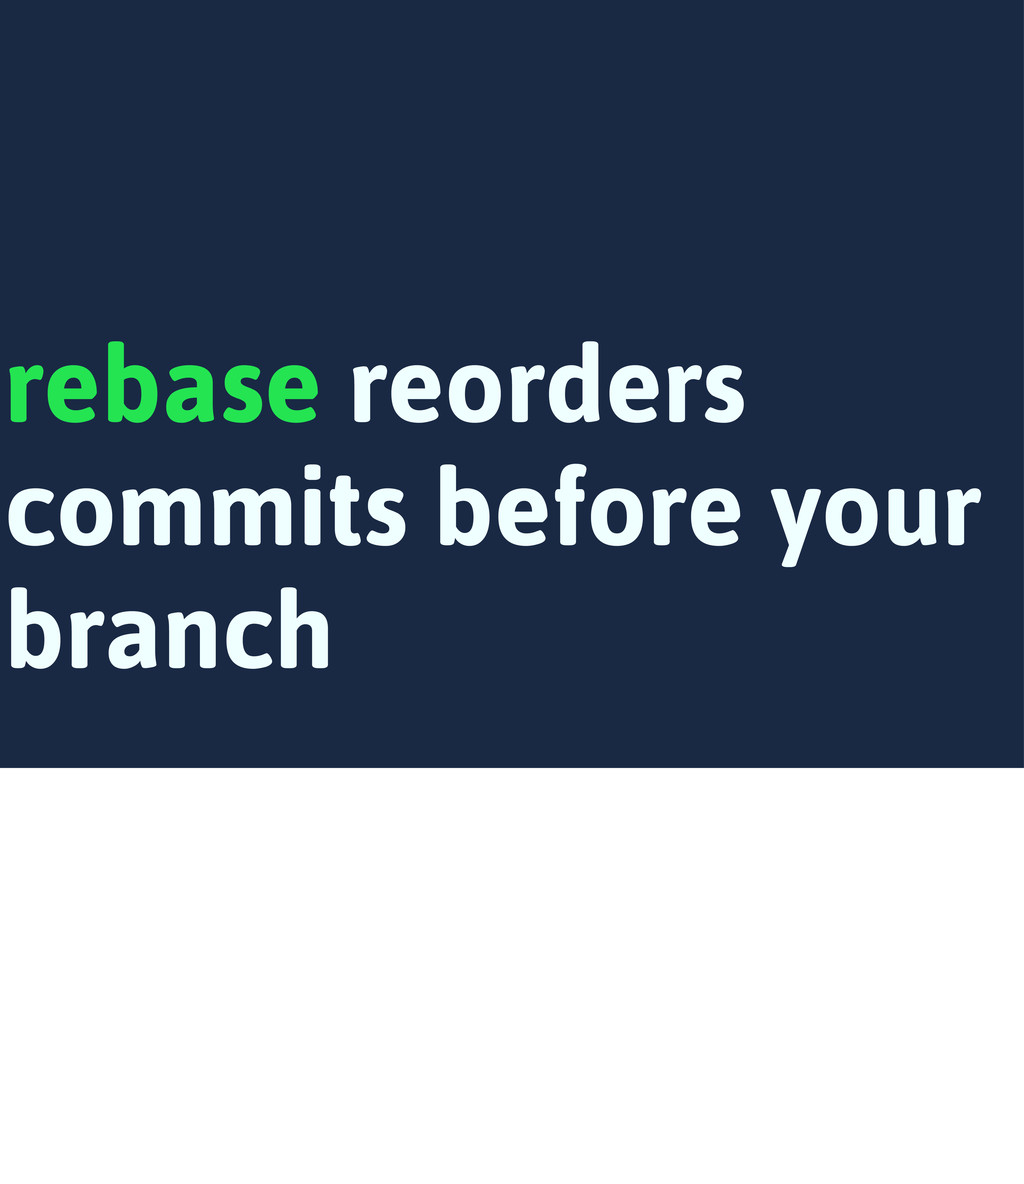 rebase reorders commits before your branch